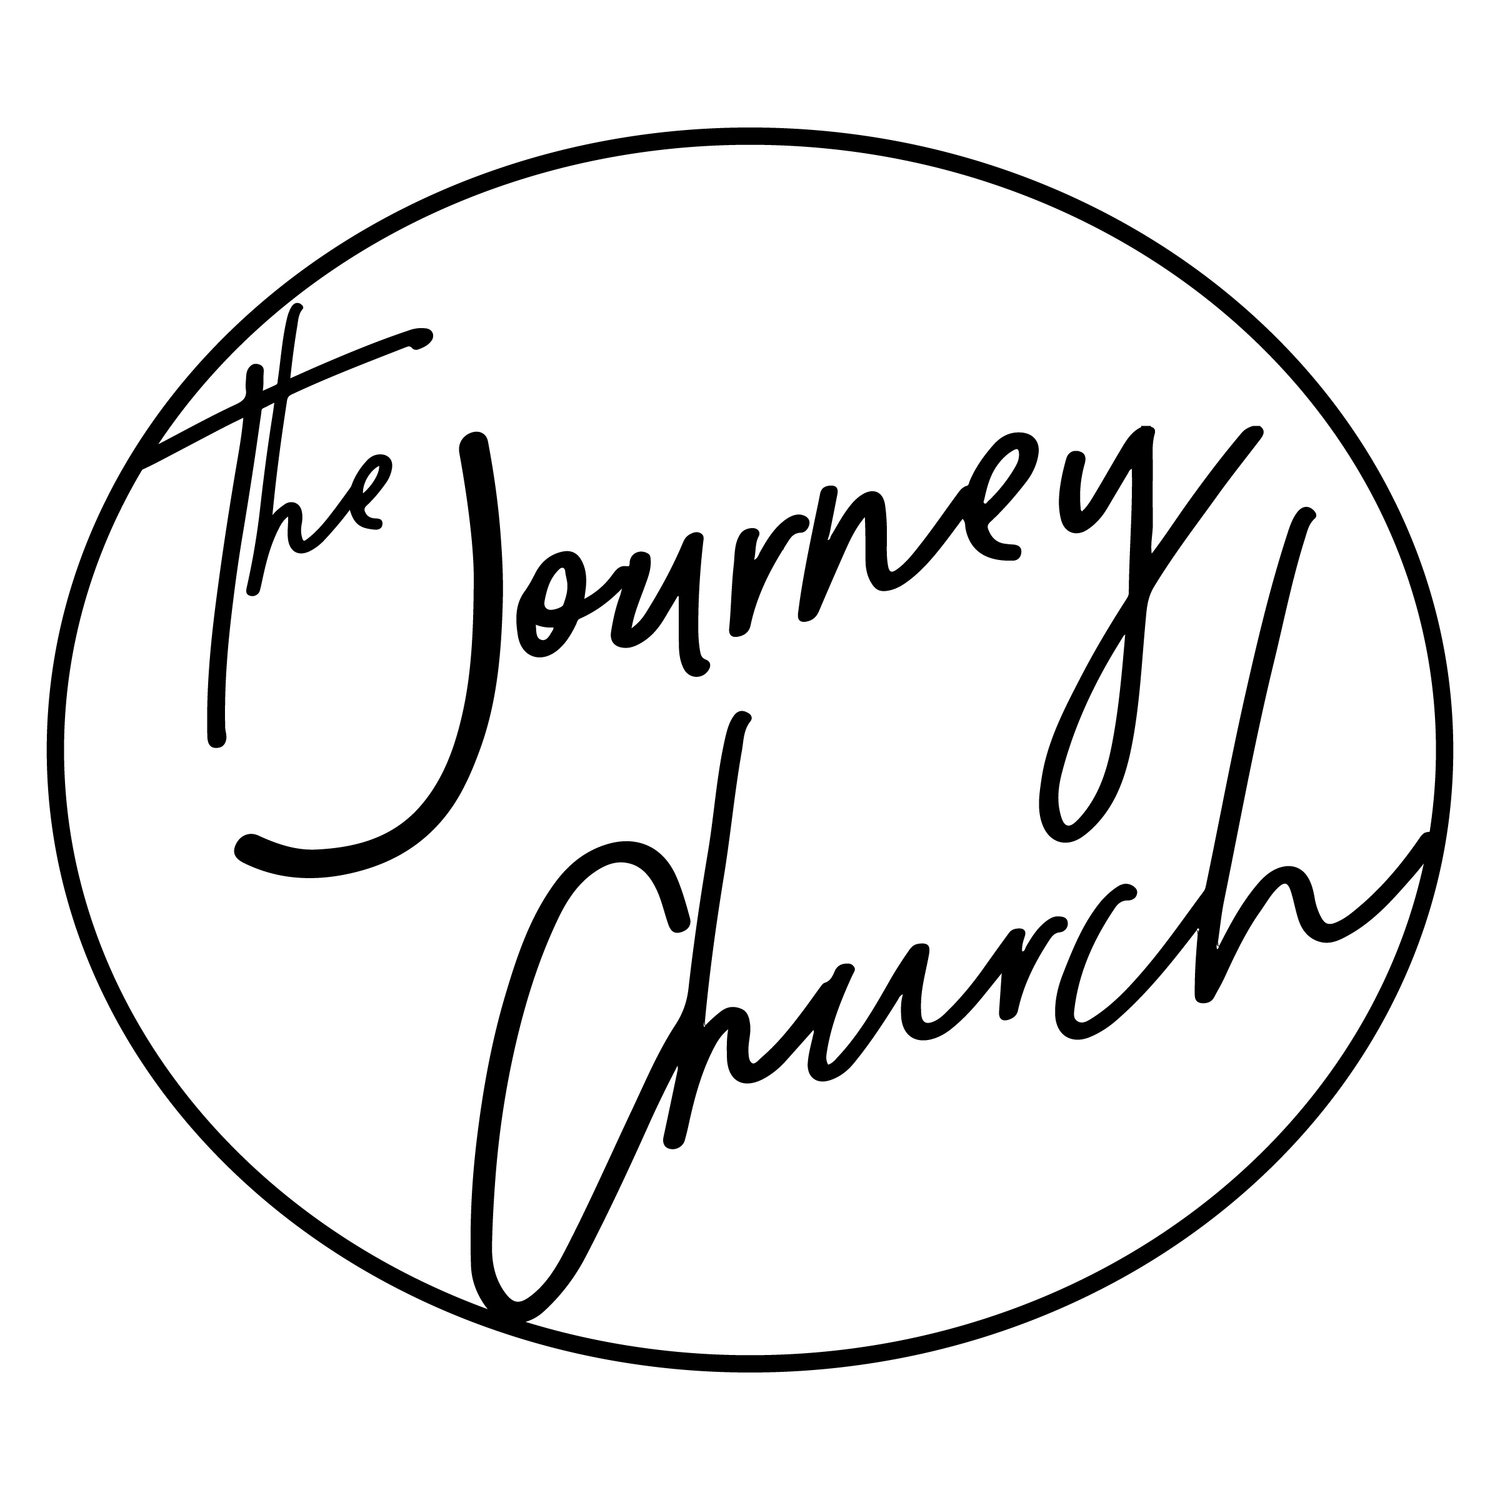 Giving — The Journey Church